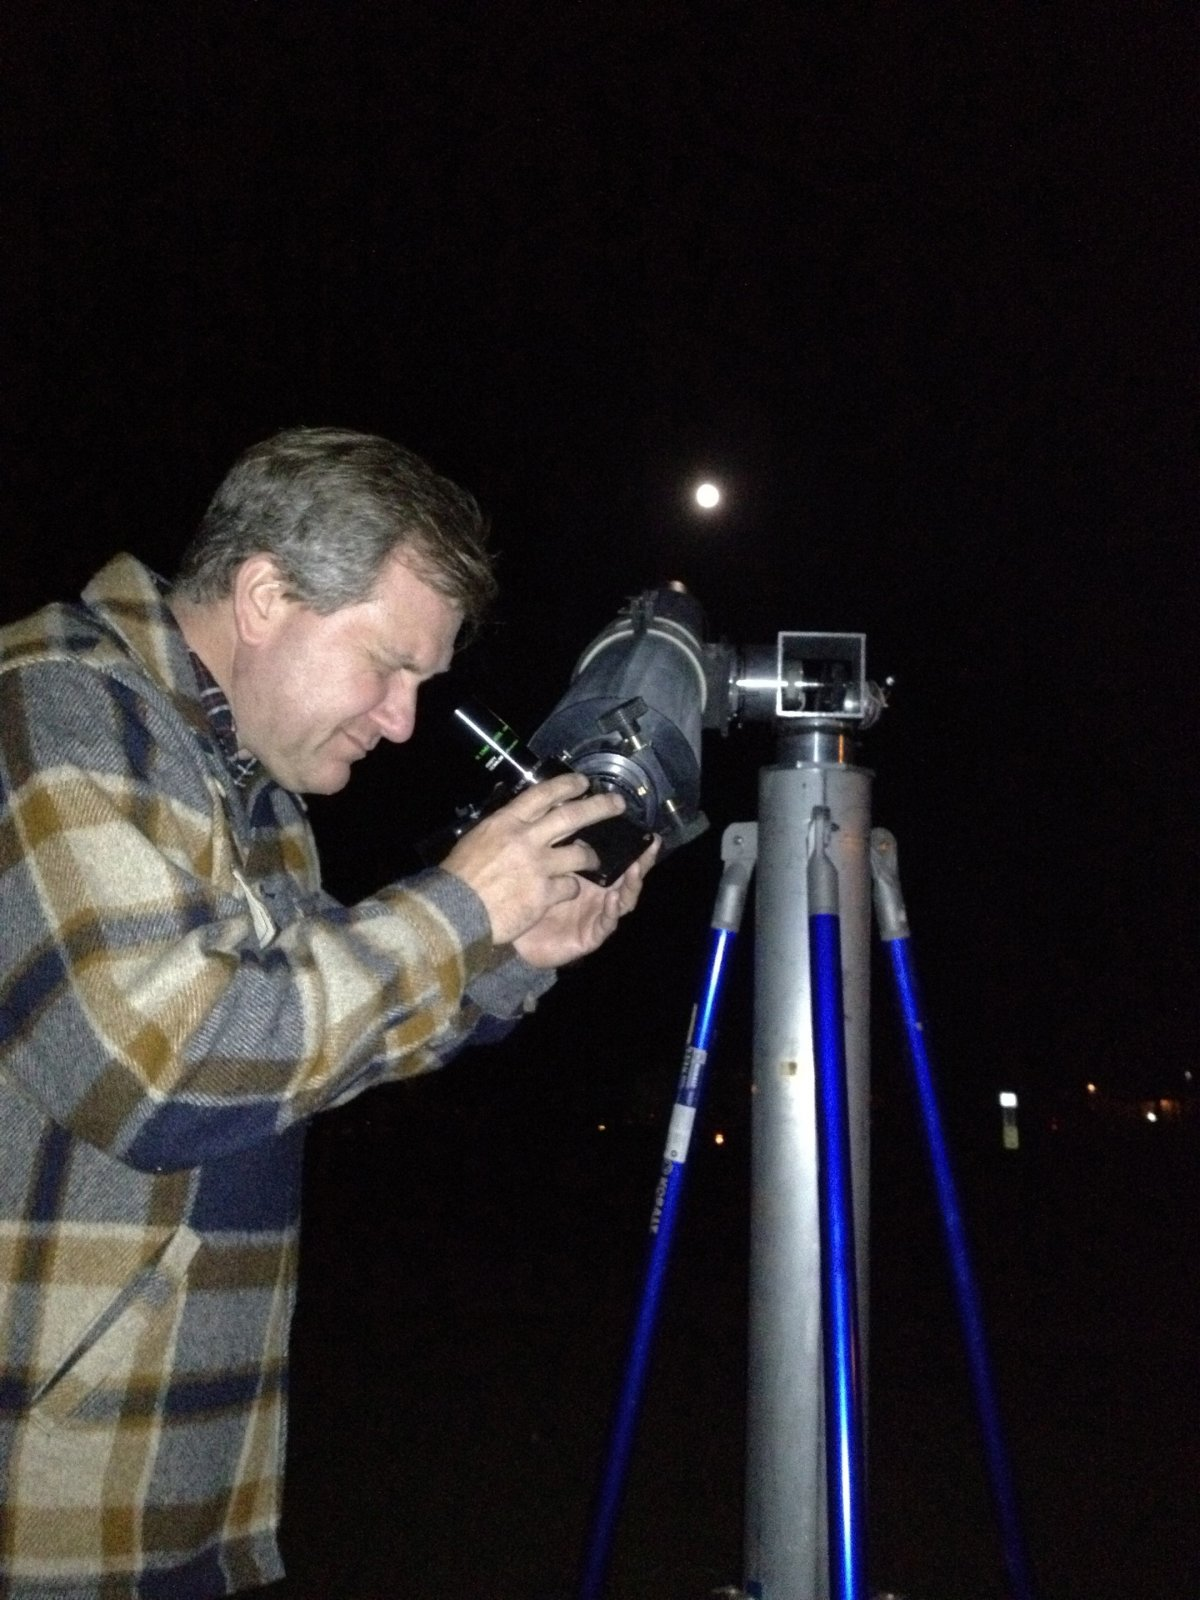 Click image for larger version  Name:Mike checking out Jupiter.jpg Views:52 Size:257.9 KB ID:149833